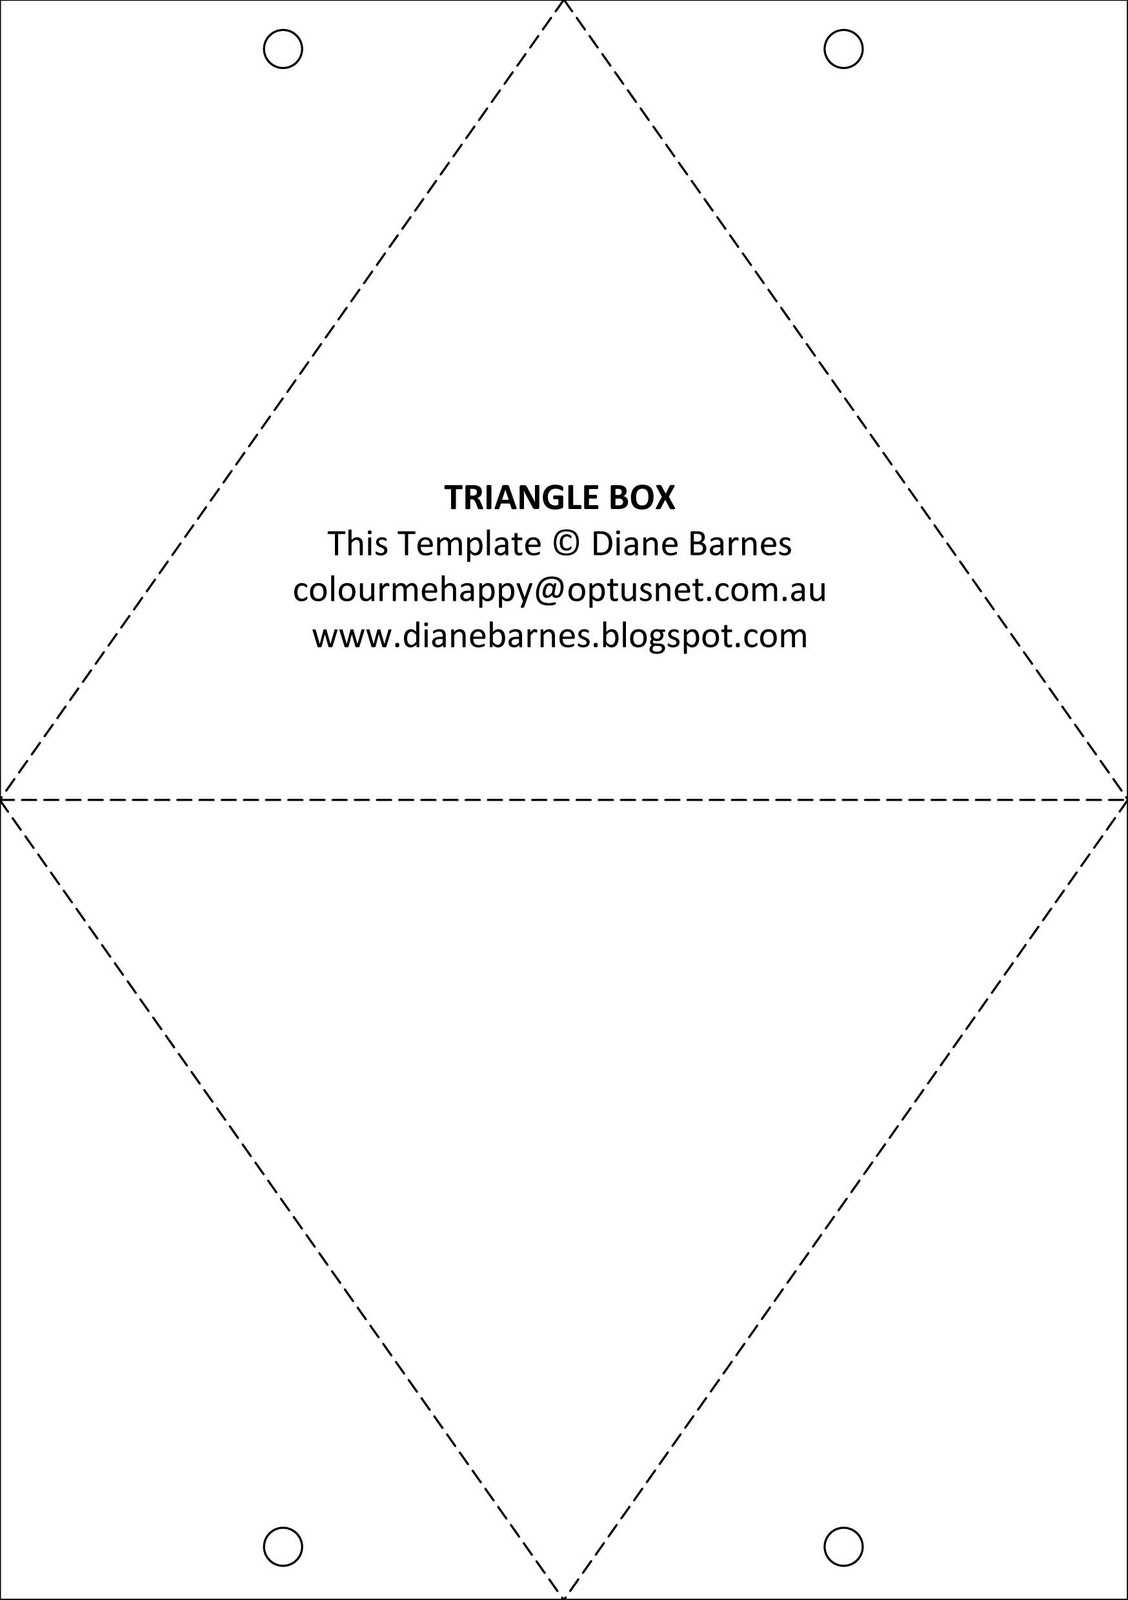 triangle packaging template - colour me happy cupcake triangle box